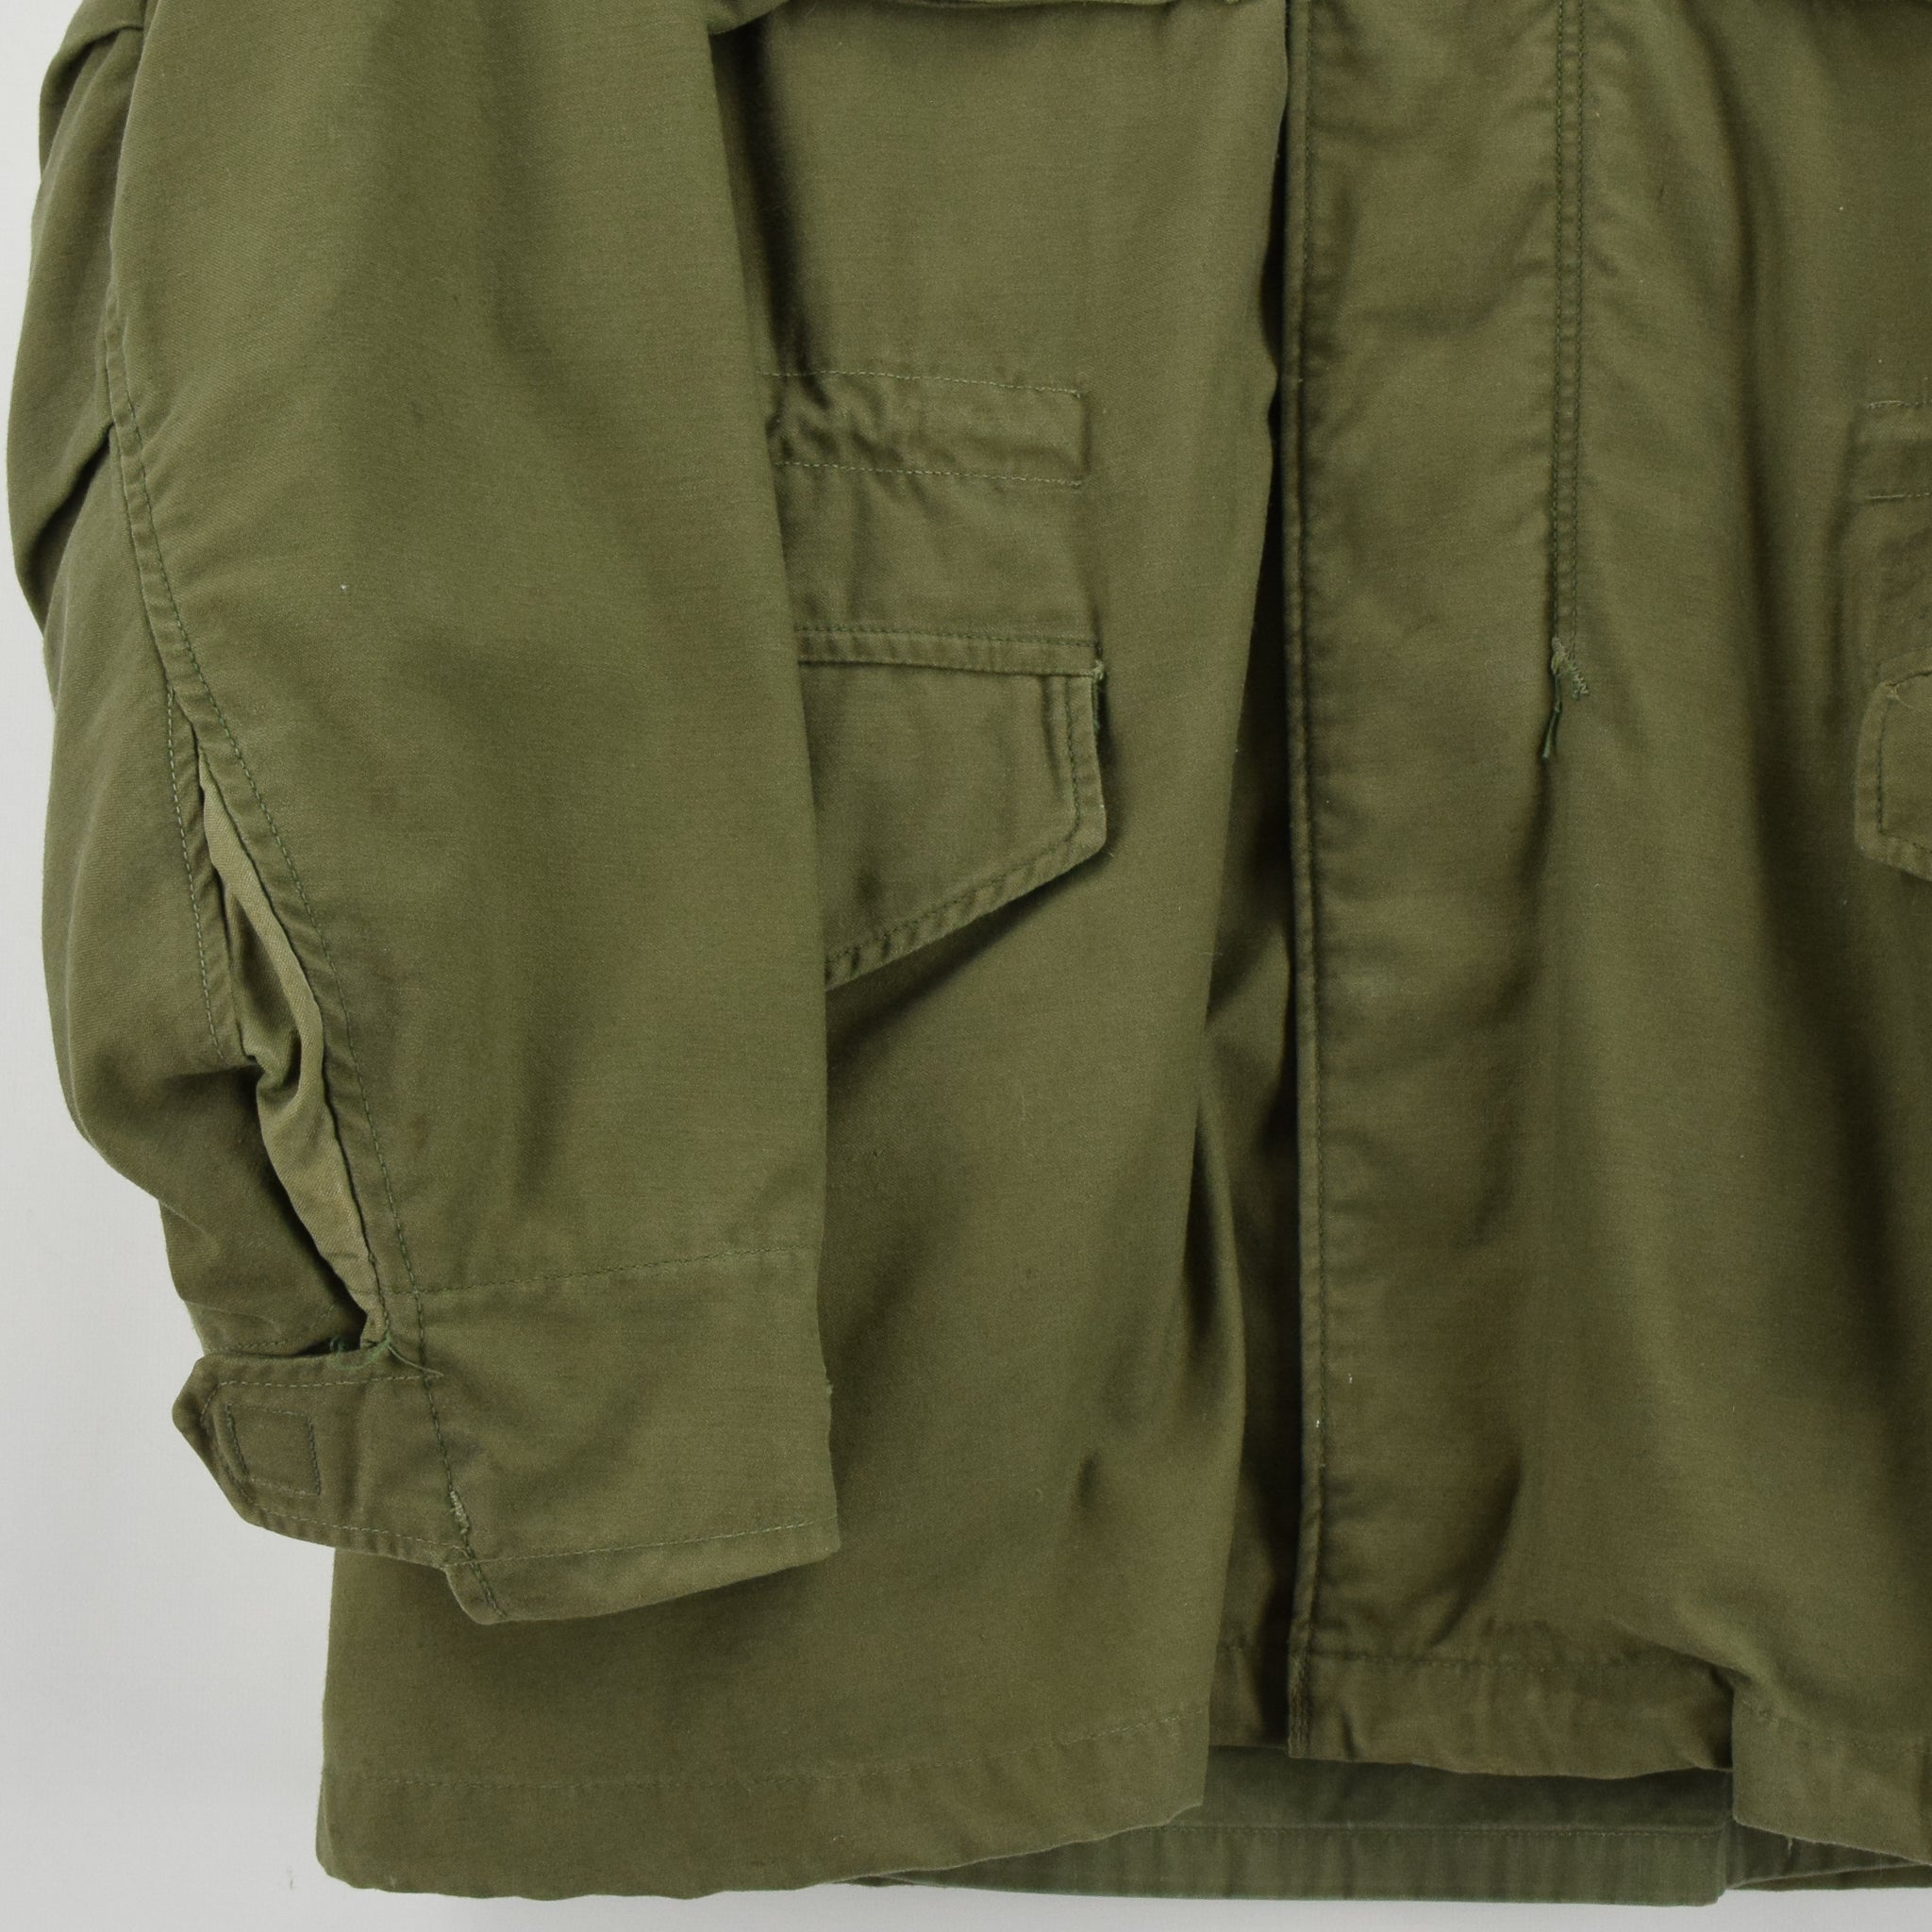 Vintage 60s Vietnam Era M-65 Man's Field Military Jacket Army Green Small Long front hem